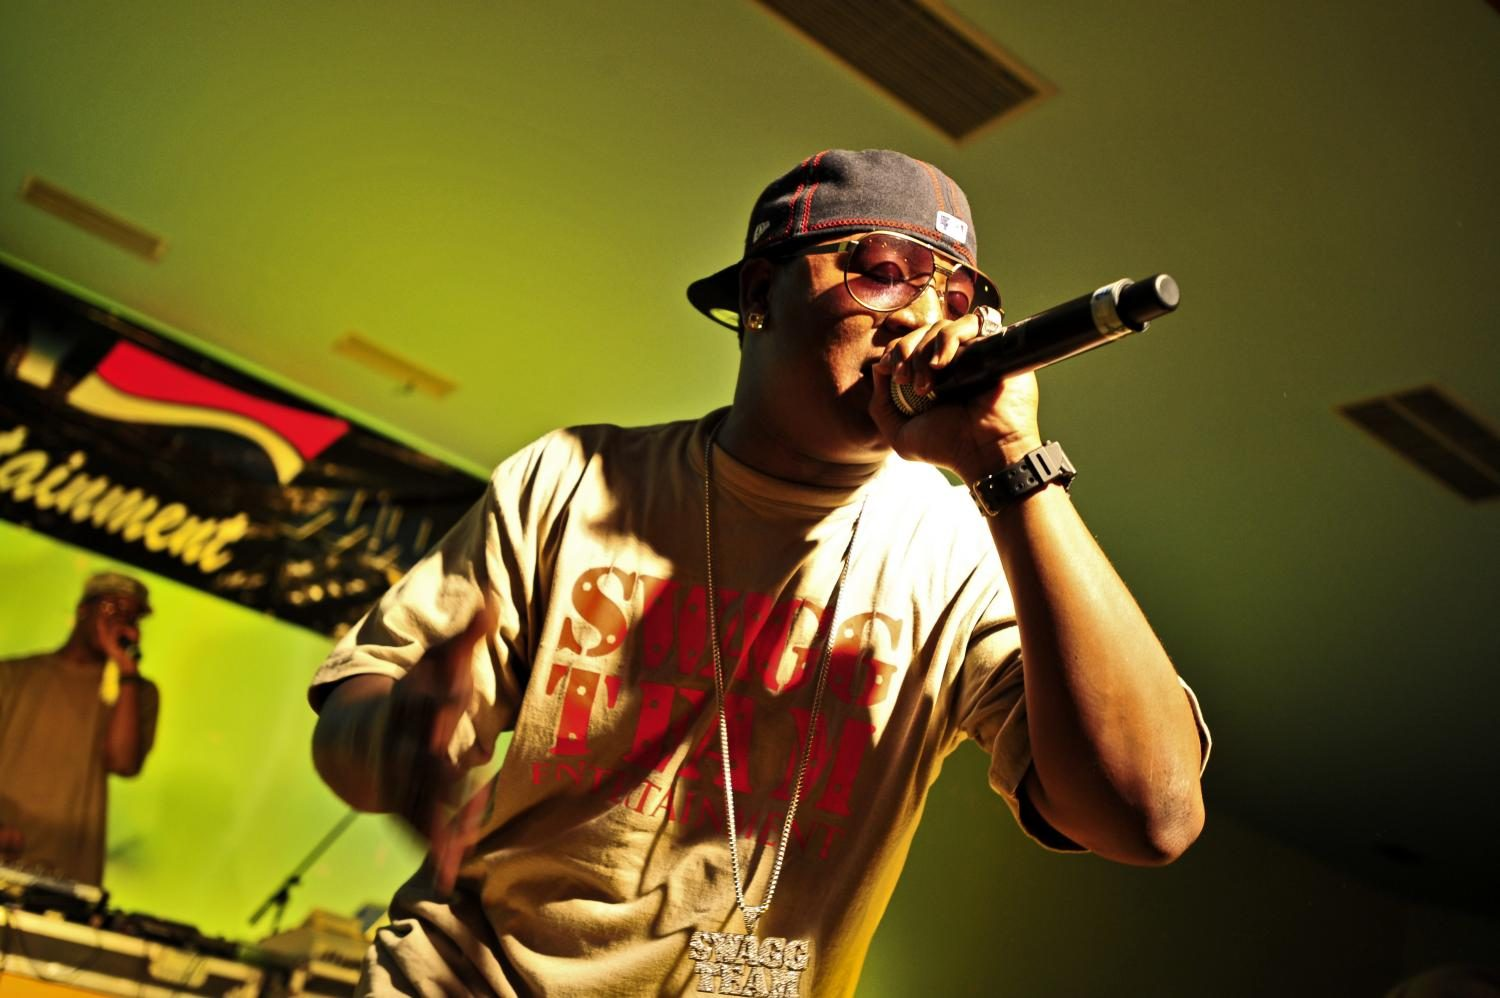 Yung+Joc+performs+for+military+members+at+a+U.S.+naval+base+in+Africa.+Photo+courtesy+of+Wikimedia+Commons+